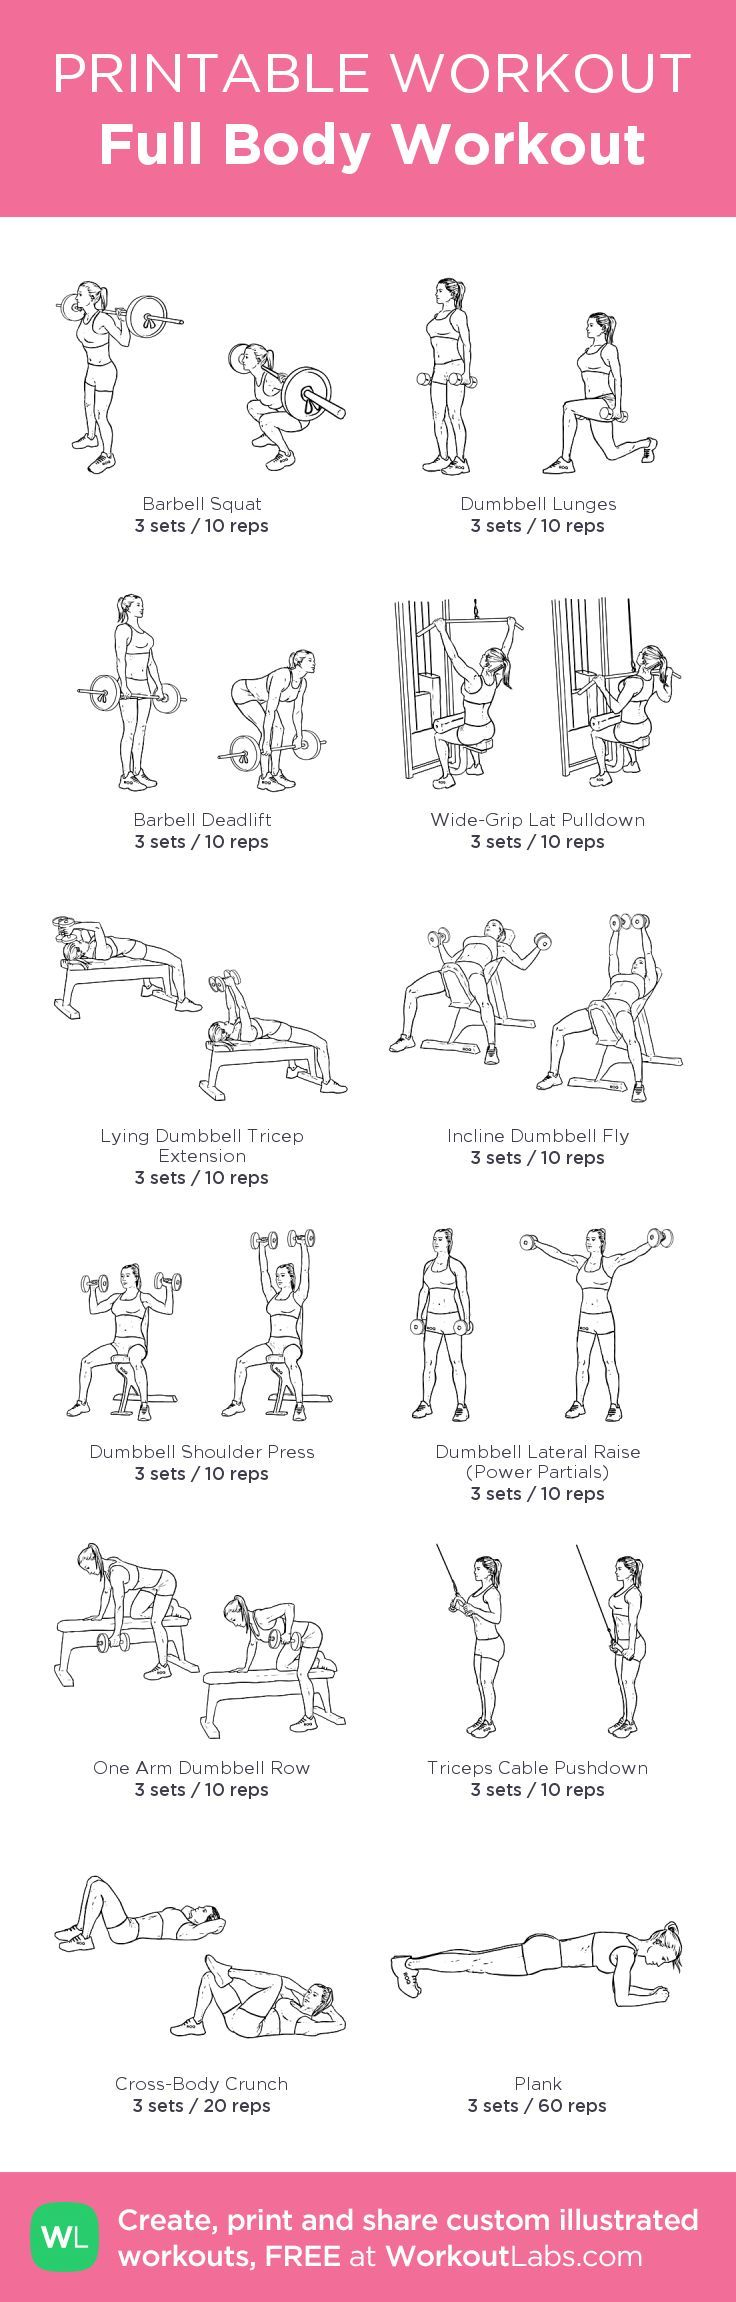 Full Body Workout: My Custom Printable Workout@workoutlabs - Free Printable Gym Workout Routines